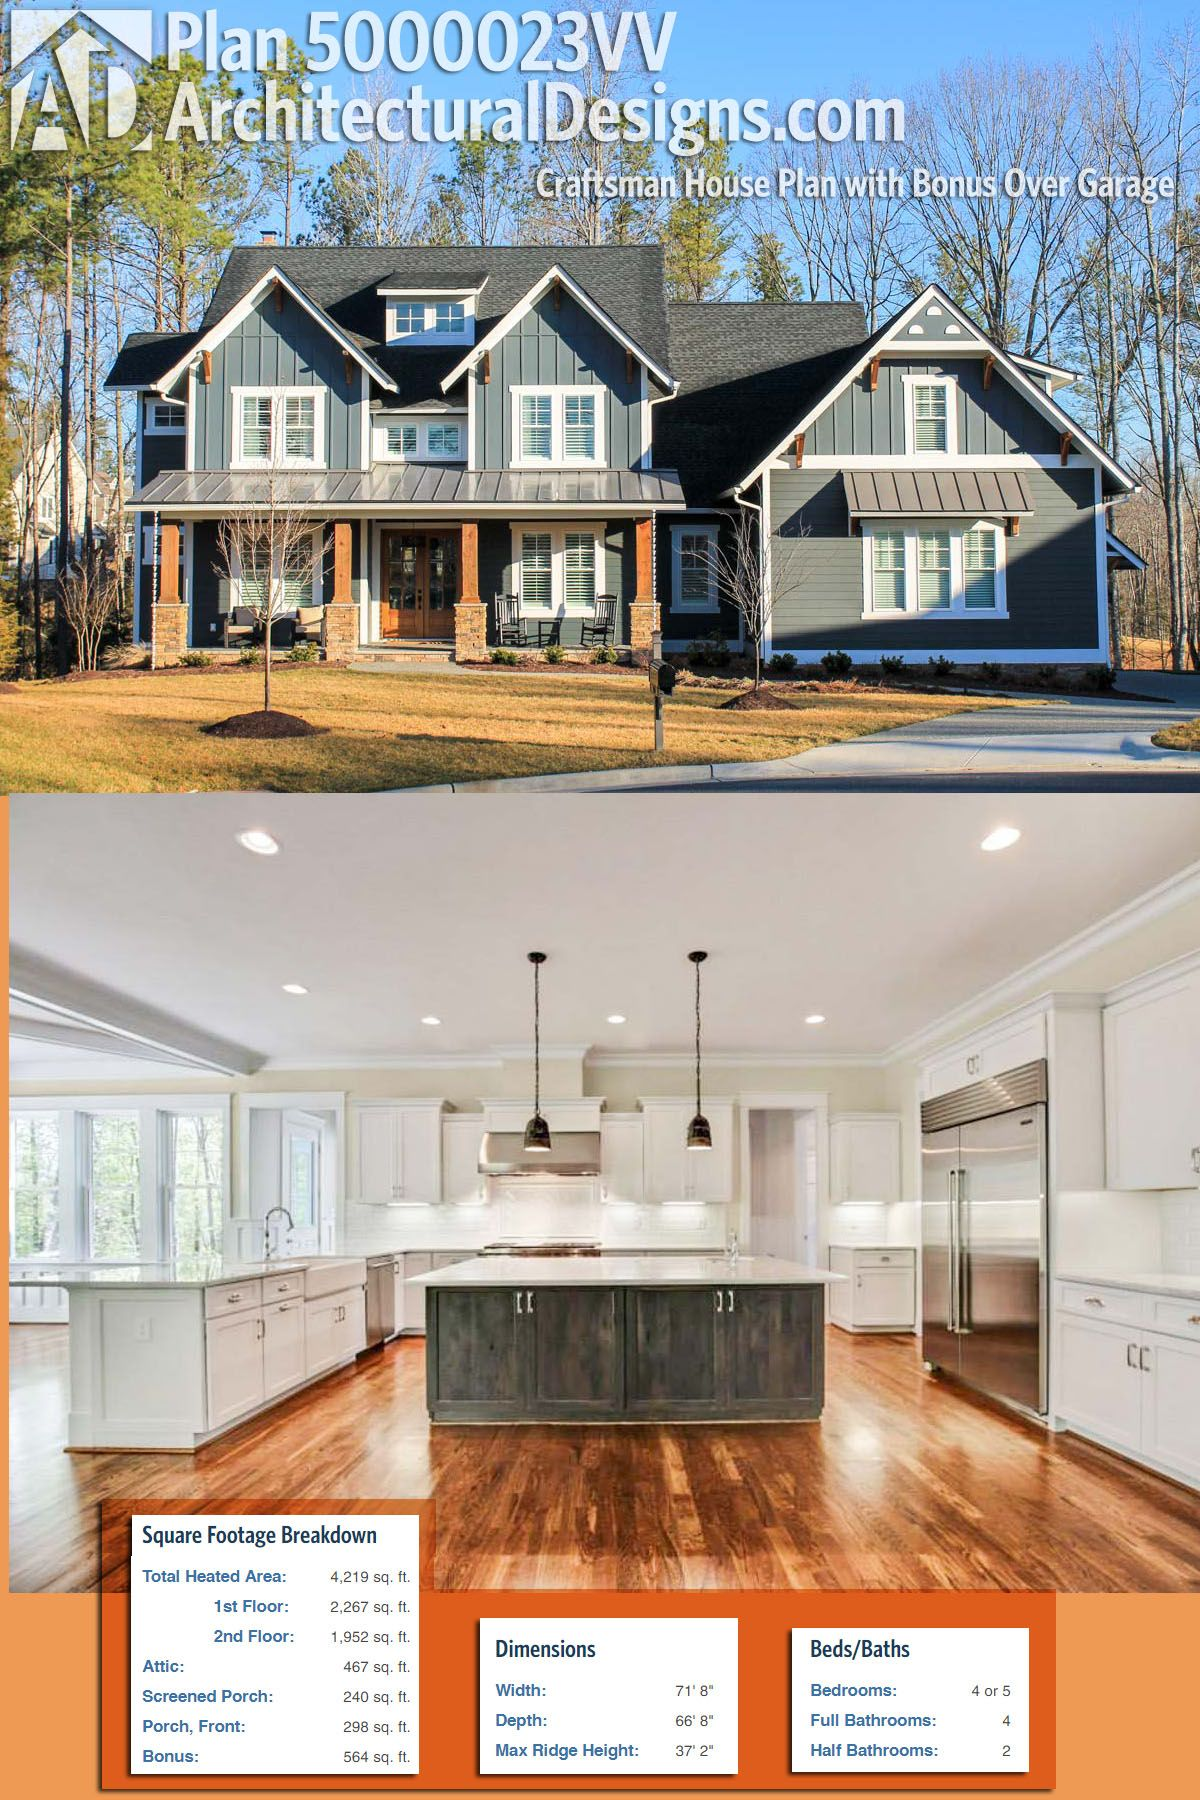 West contemporary exterior raleigh by triangle brick company - Triangle Brick Company Oyster Bay Old World Charm For The Ages Oyster Bay Triangle Brick Company Pinterest Brick Companies Oysters And Bricks